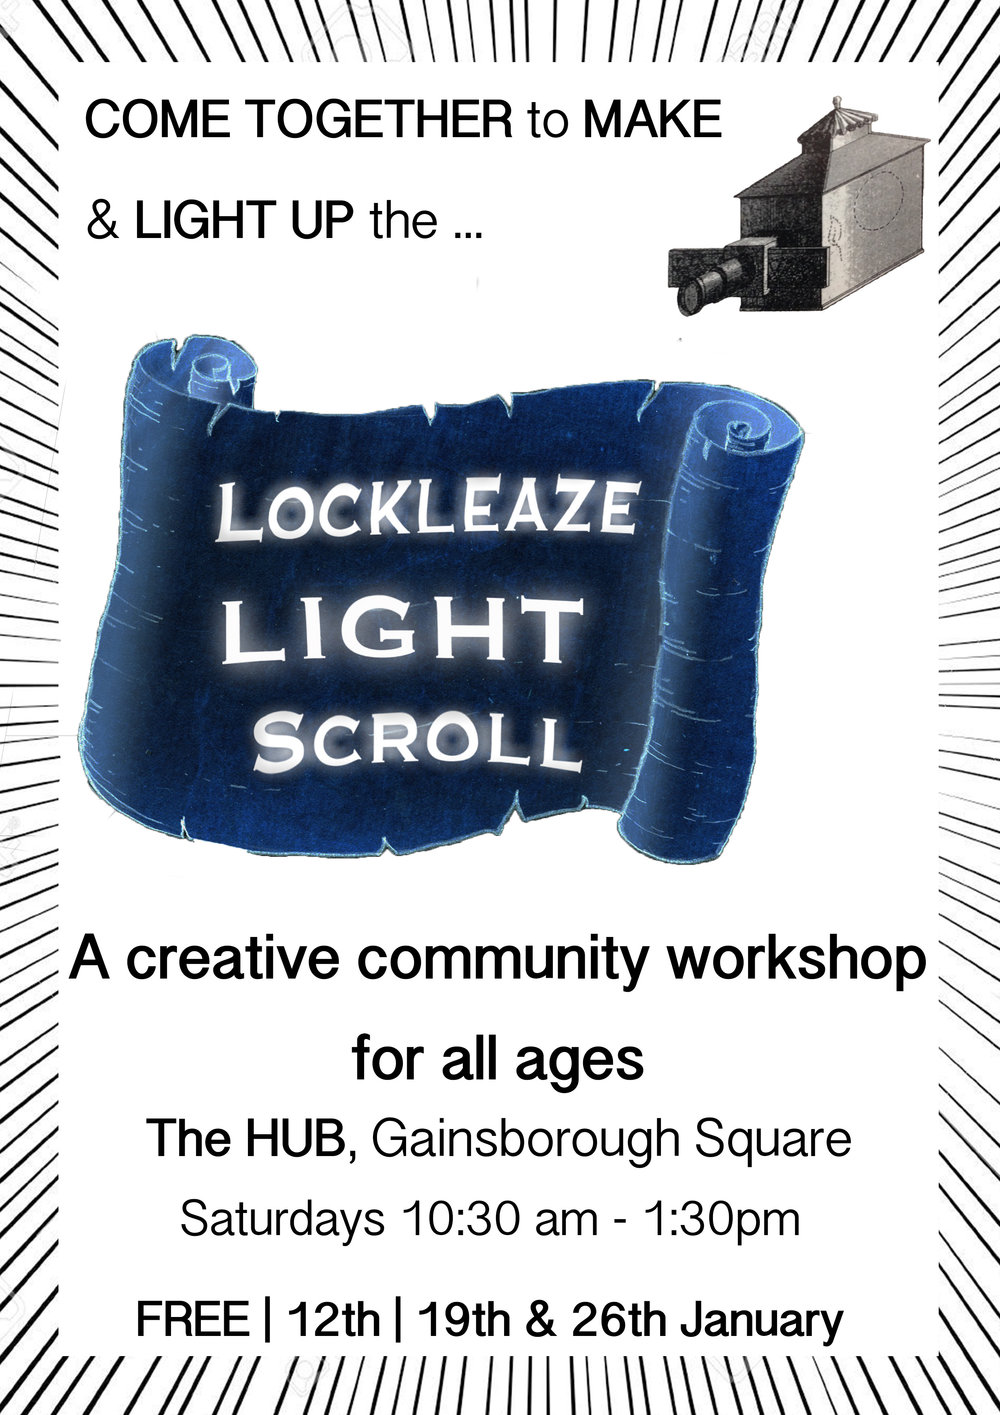 Lockleaze Light Scroll Poster.jpg